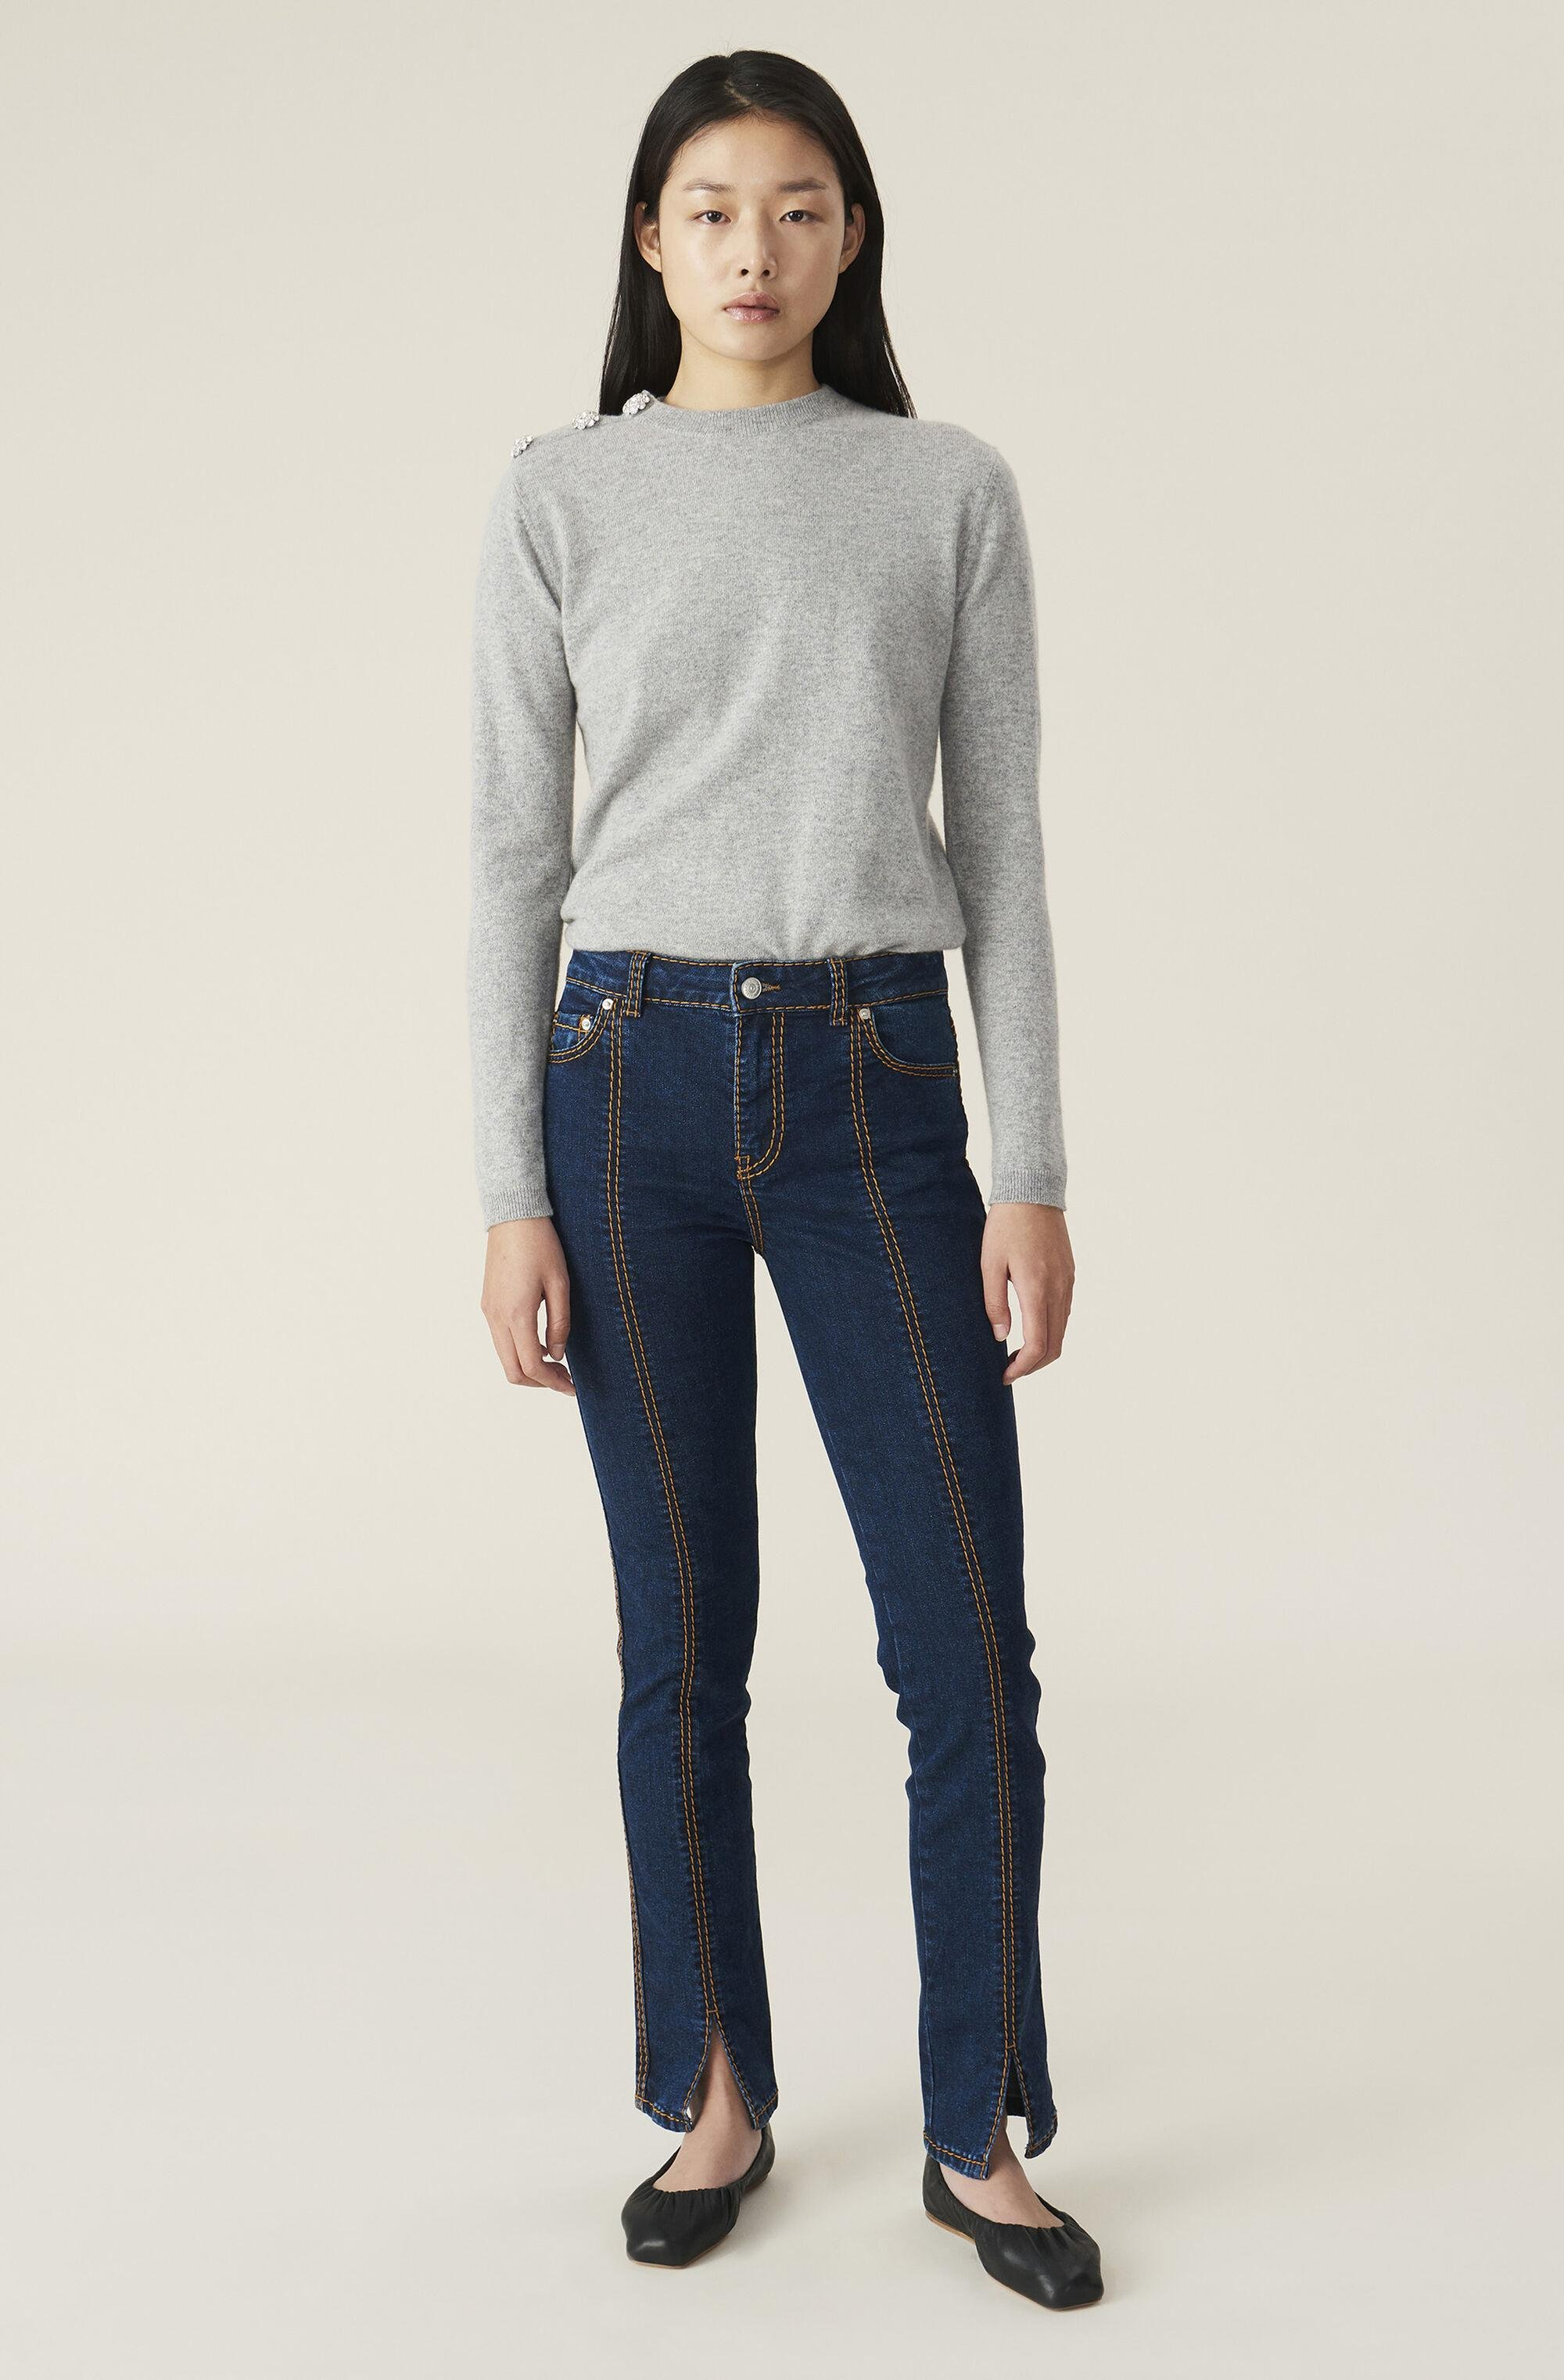 Cashmere Knit Pullover - Solid 1